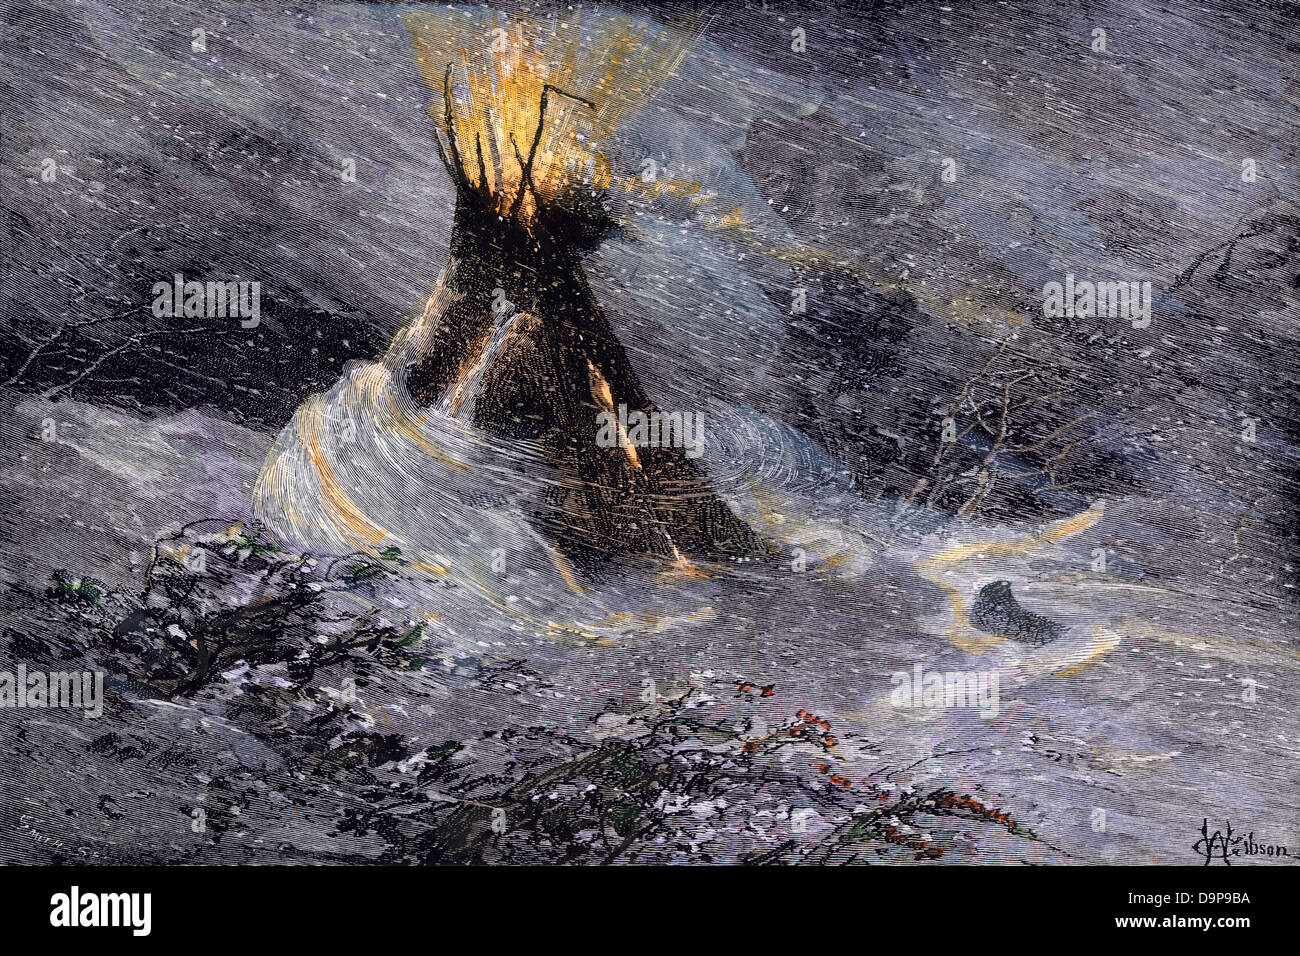 Native American tepee in a snowstorm, emitting embers from center smoke-hole. Hand-colored woodcut - Stock Image